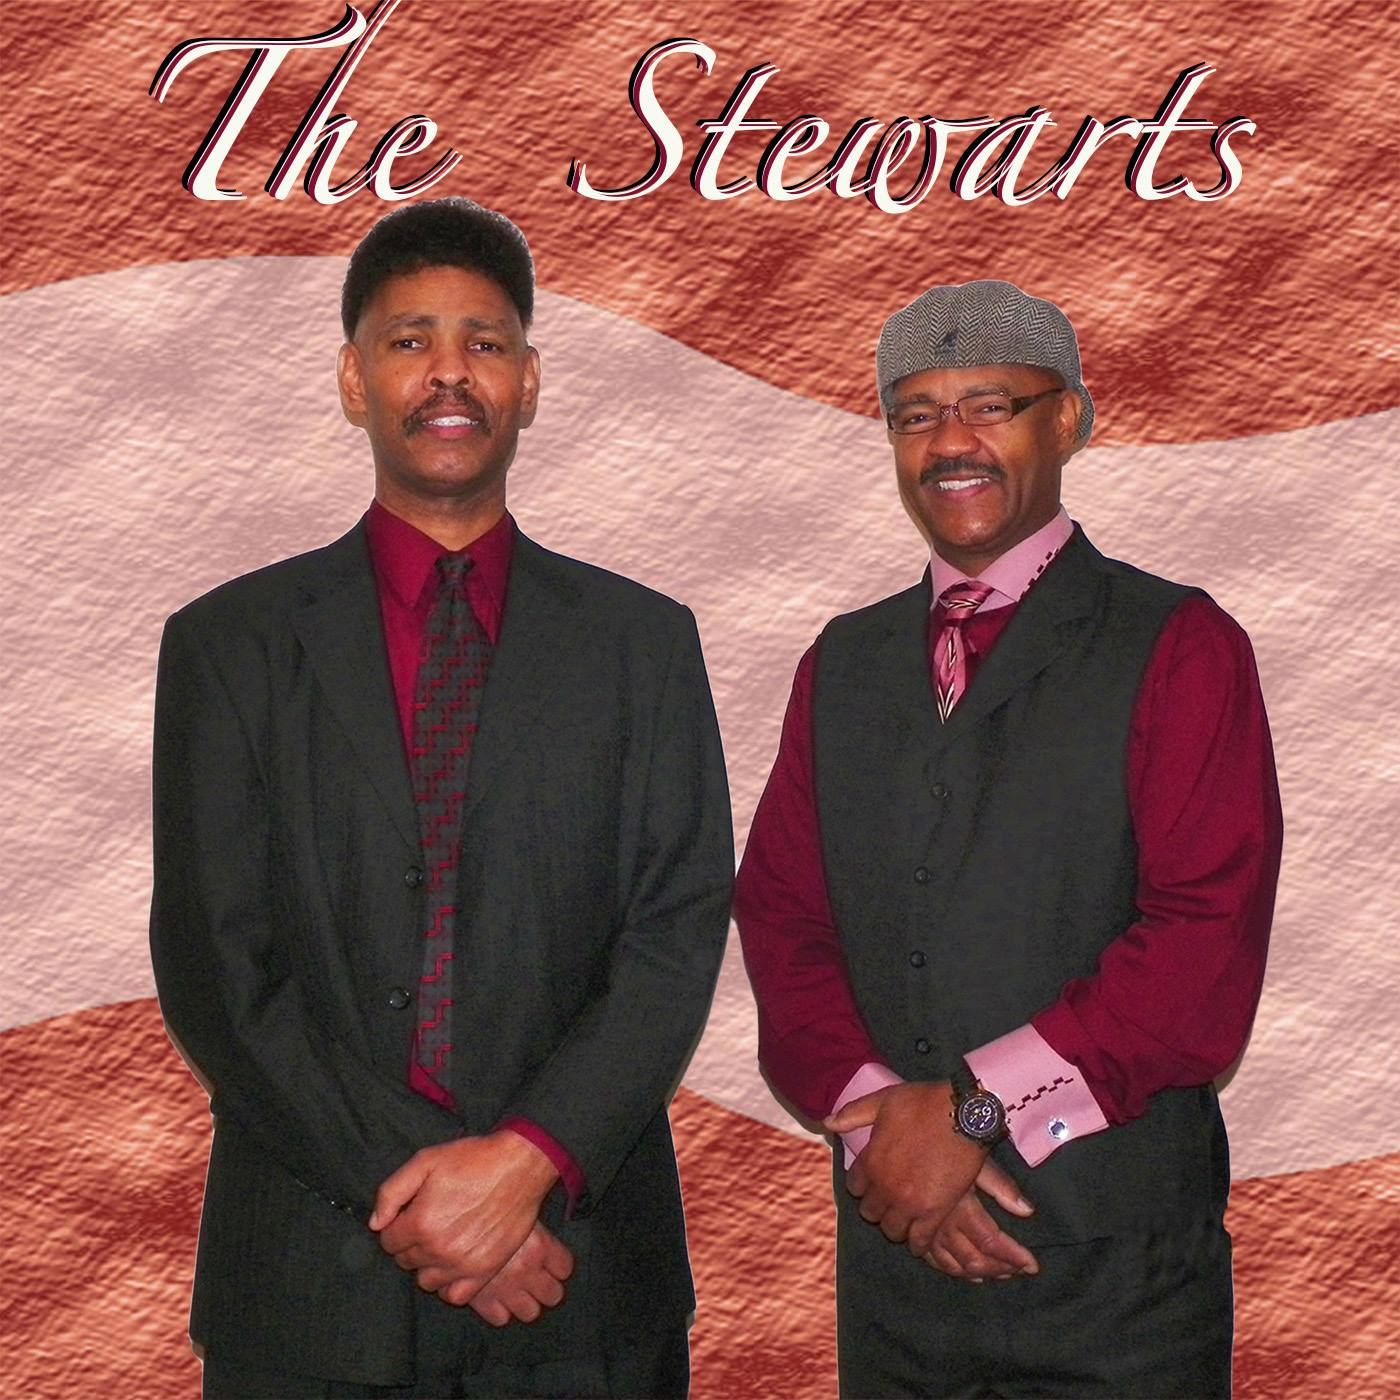 Old School And New School Collide on Timely New Single from The Stewarts